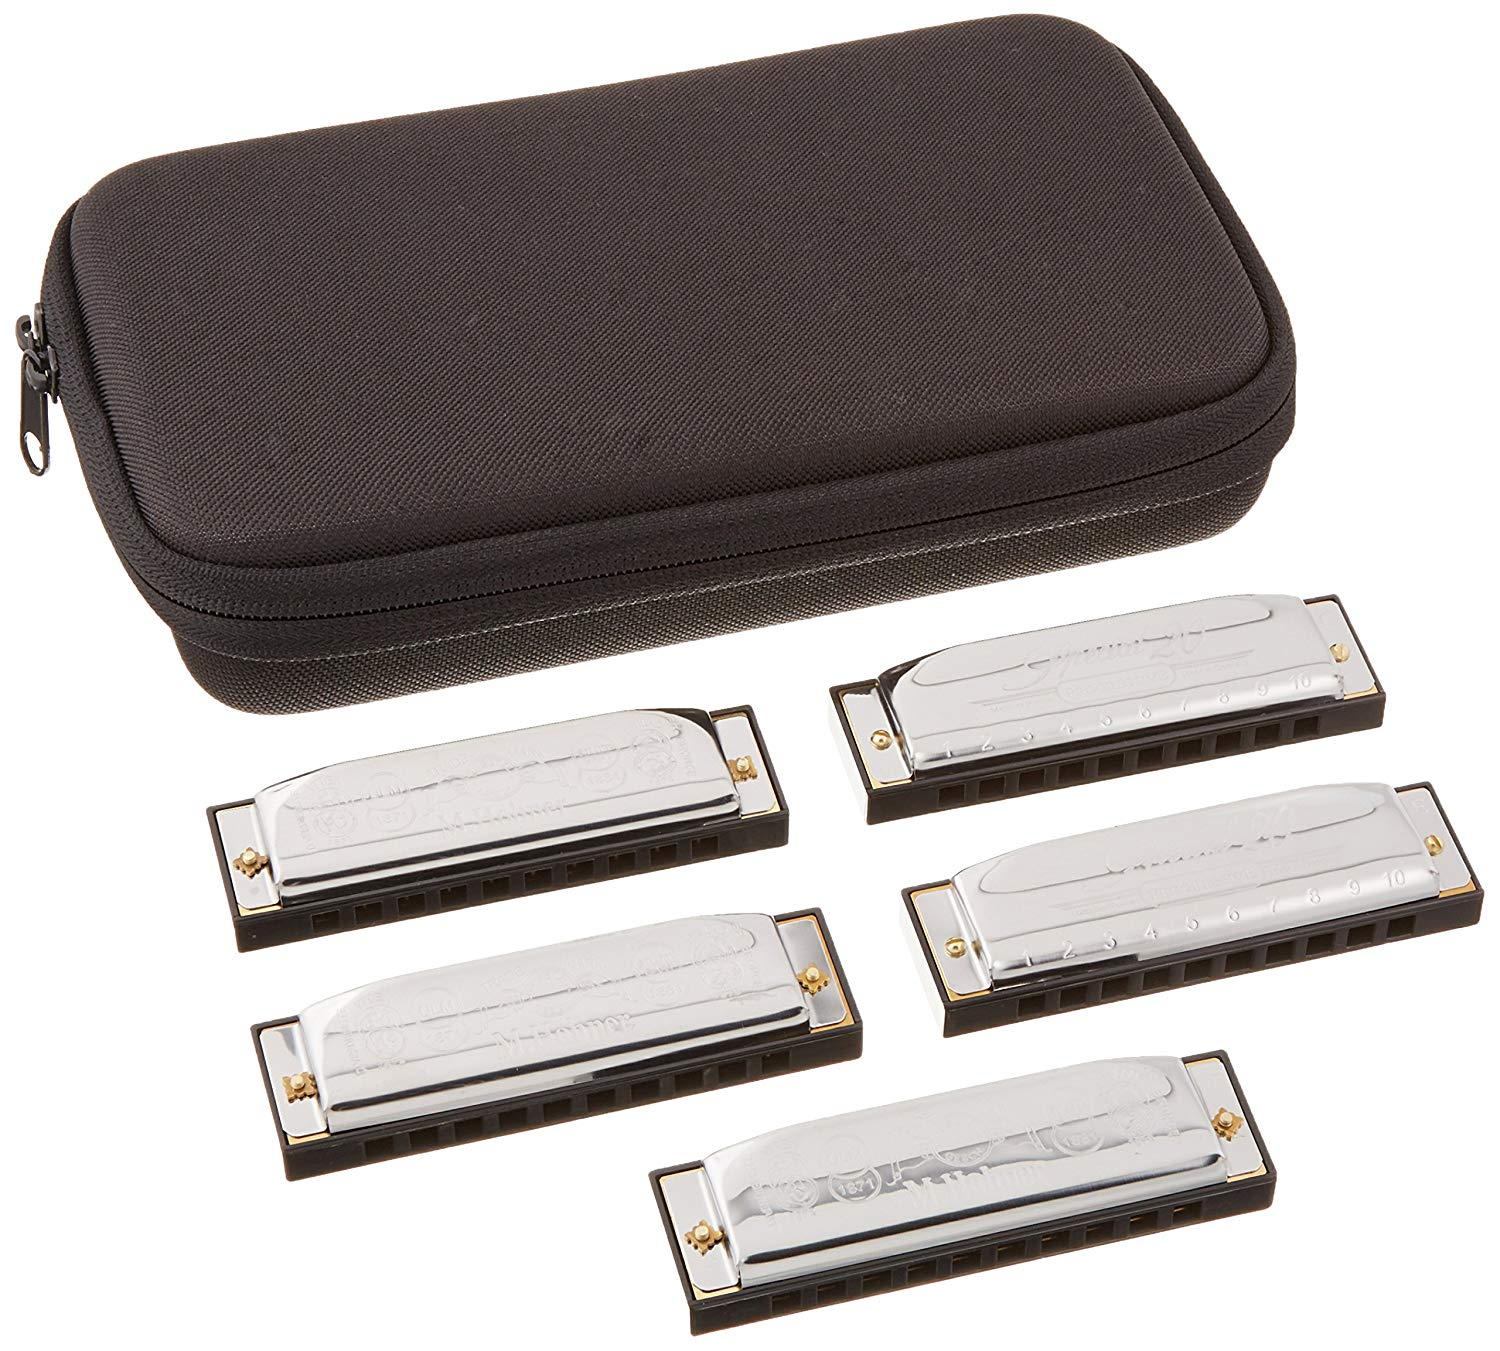 Hohner Case Of Special 20s Harmonica 5-Pack Reviews